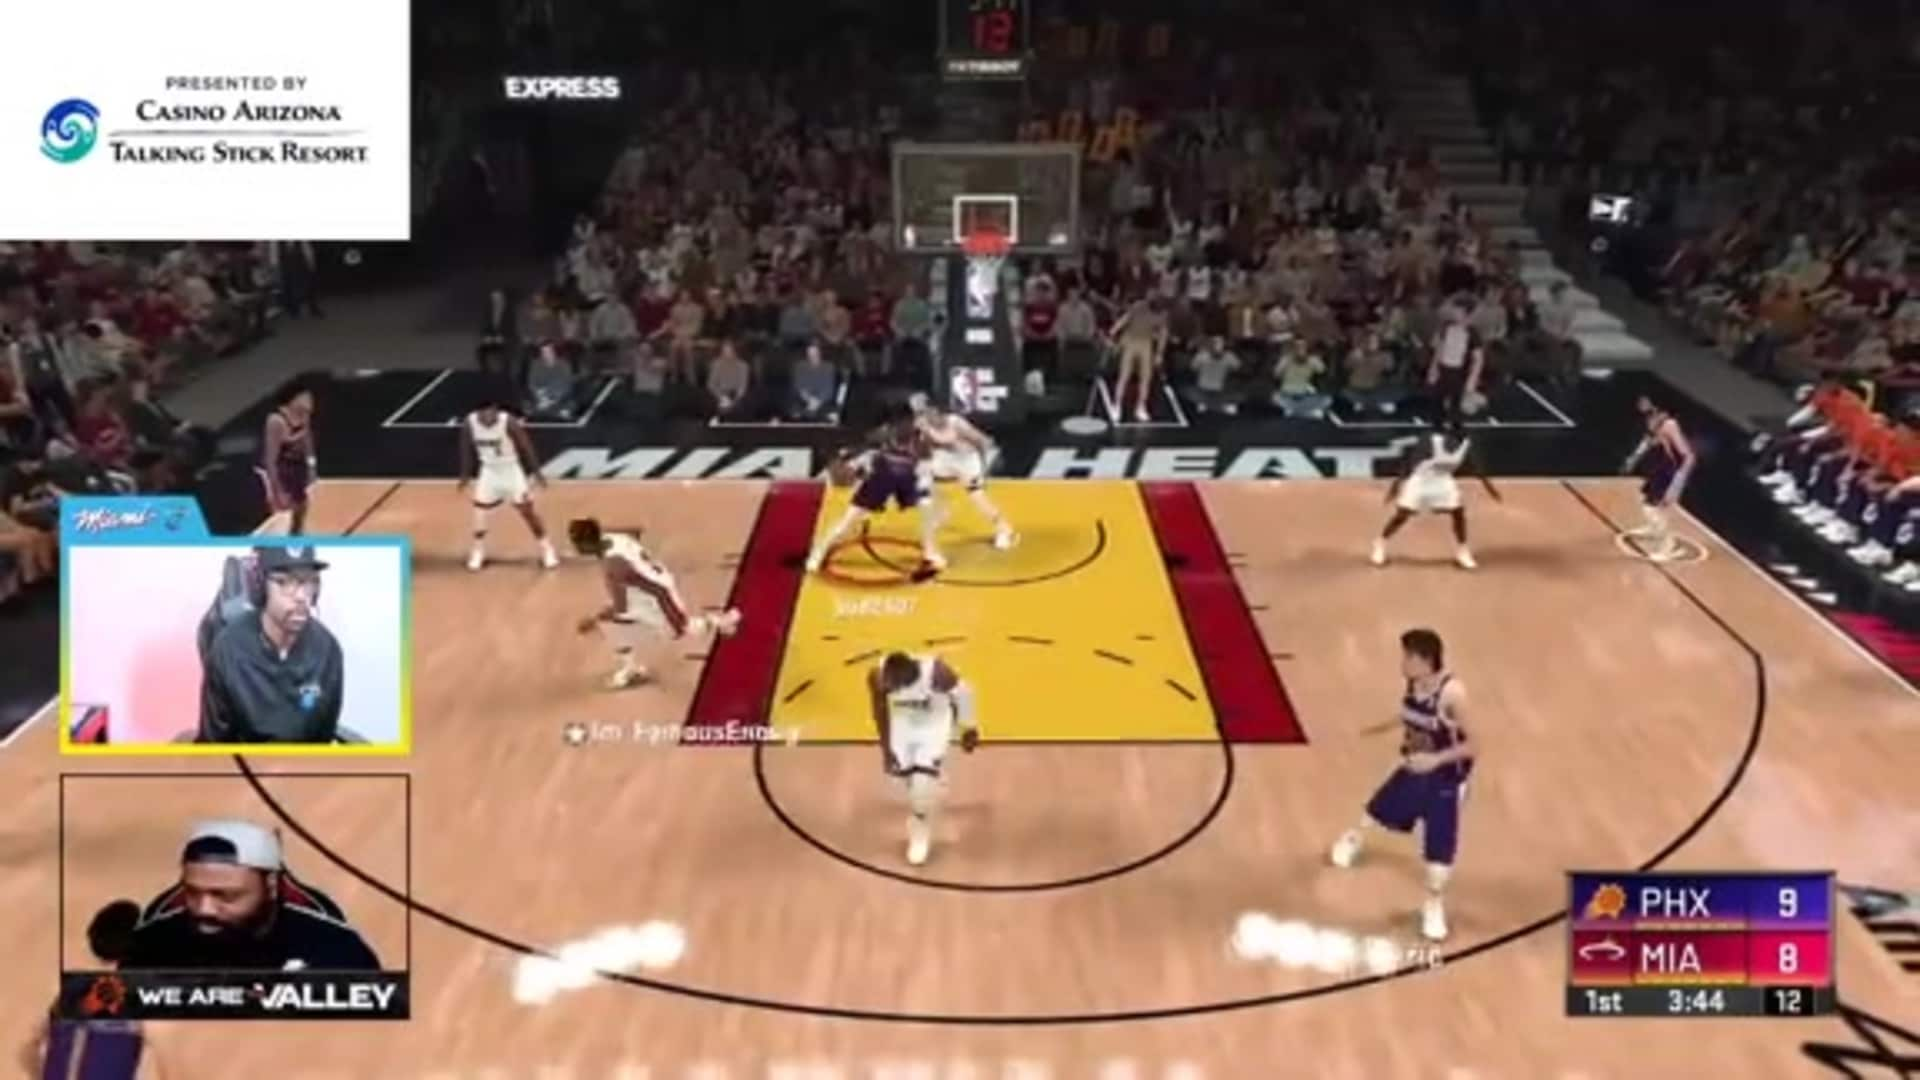 Bud Gets the And-One with Deandre Ayton on 2K20